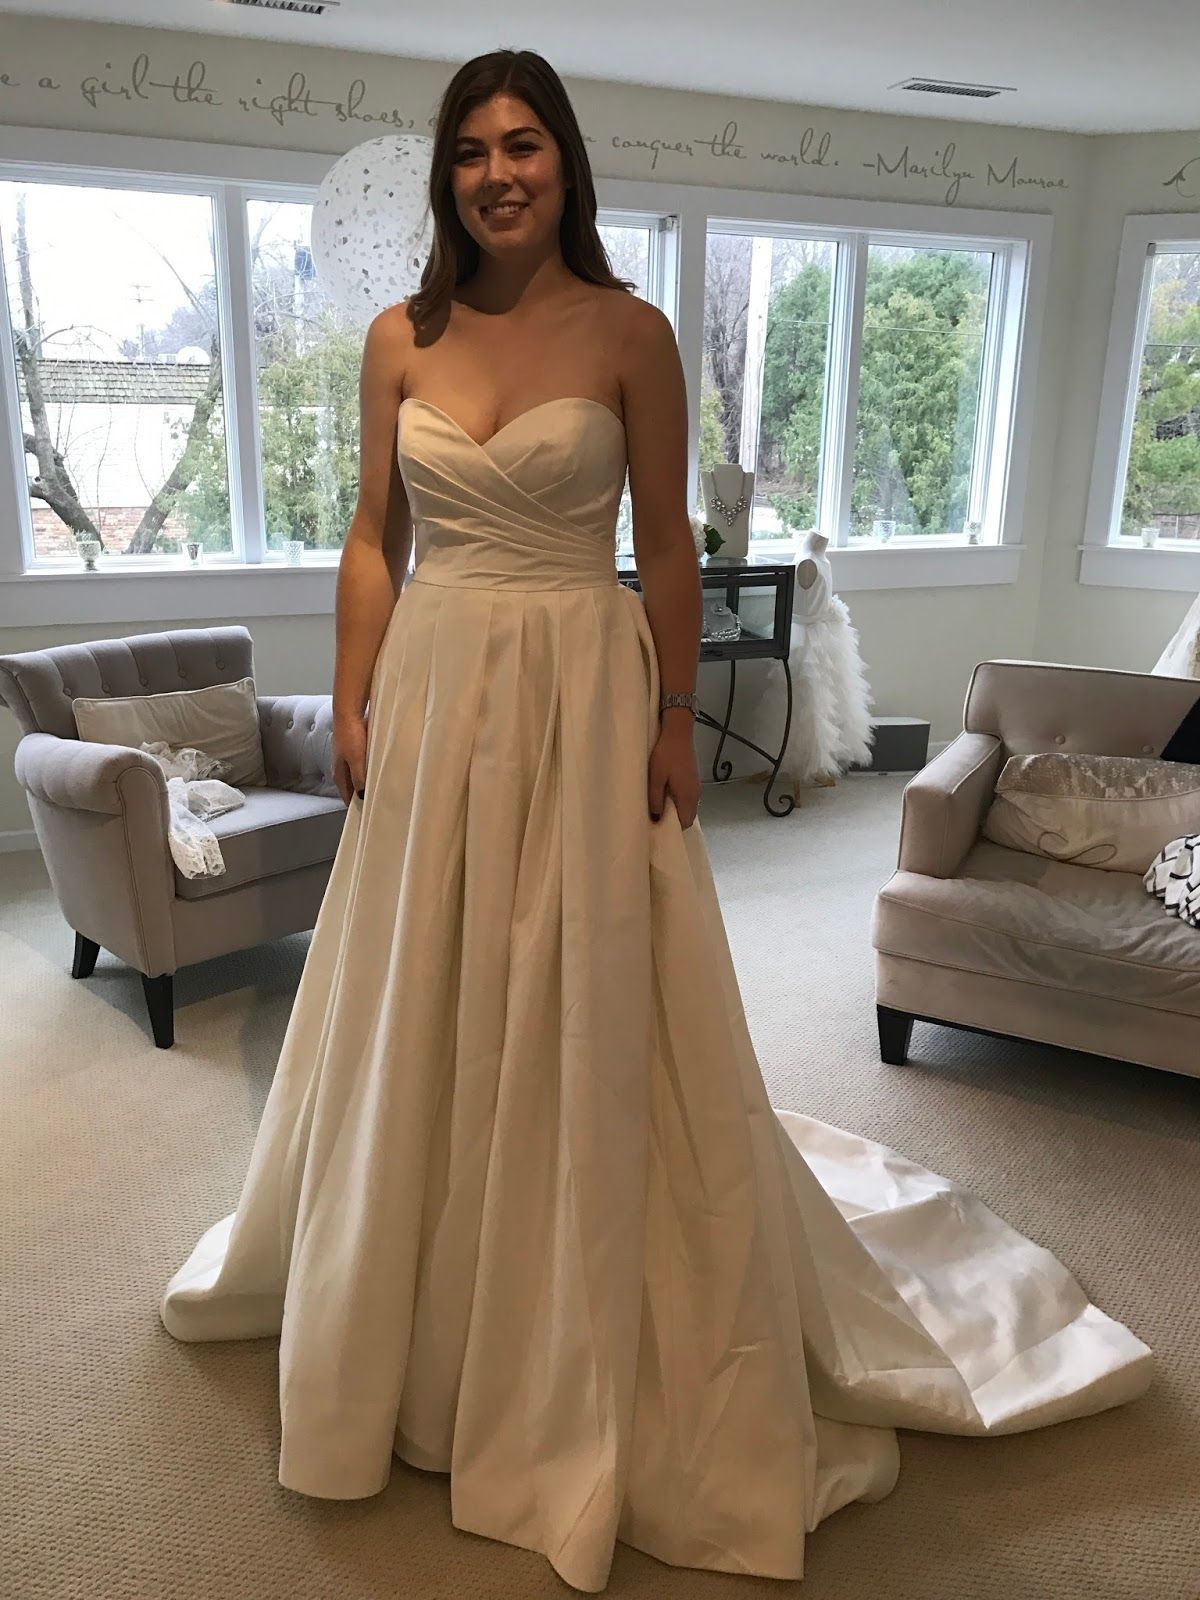 choosing-my-wedding-dress